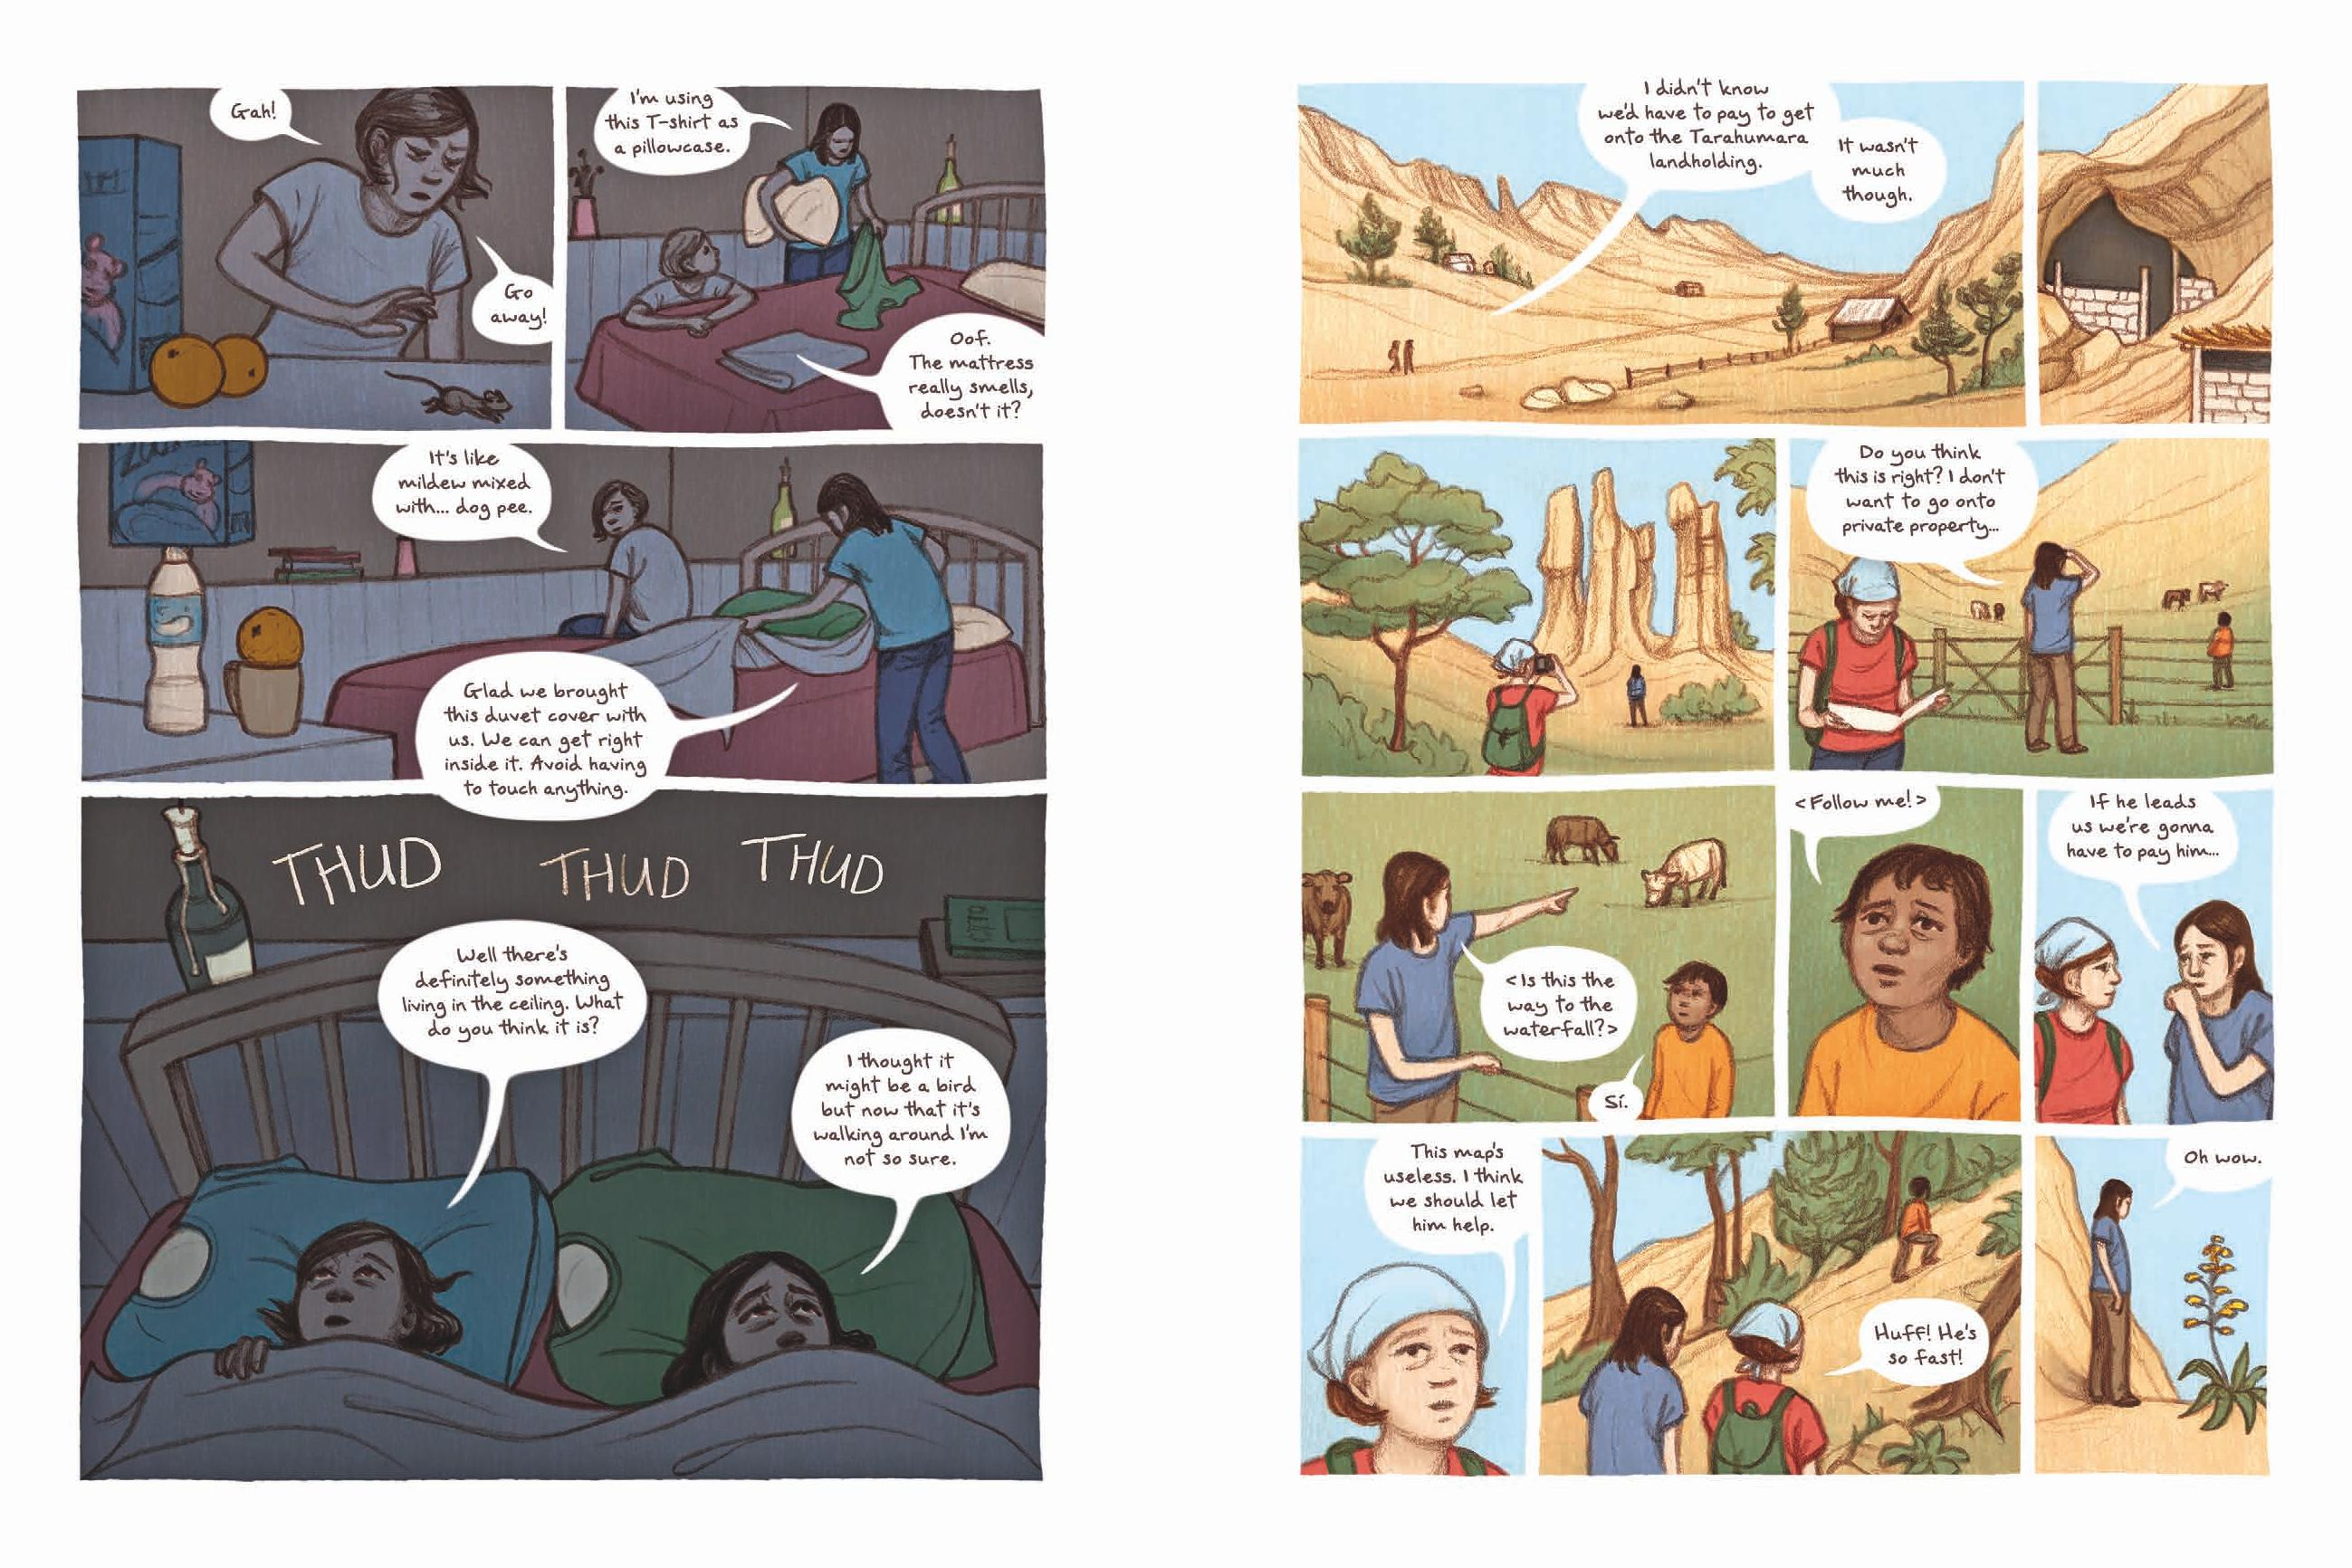 Follow Me in graphic novel review